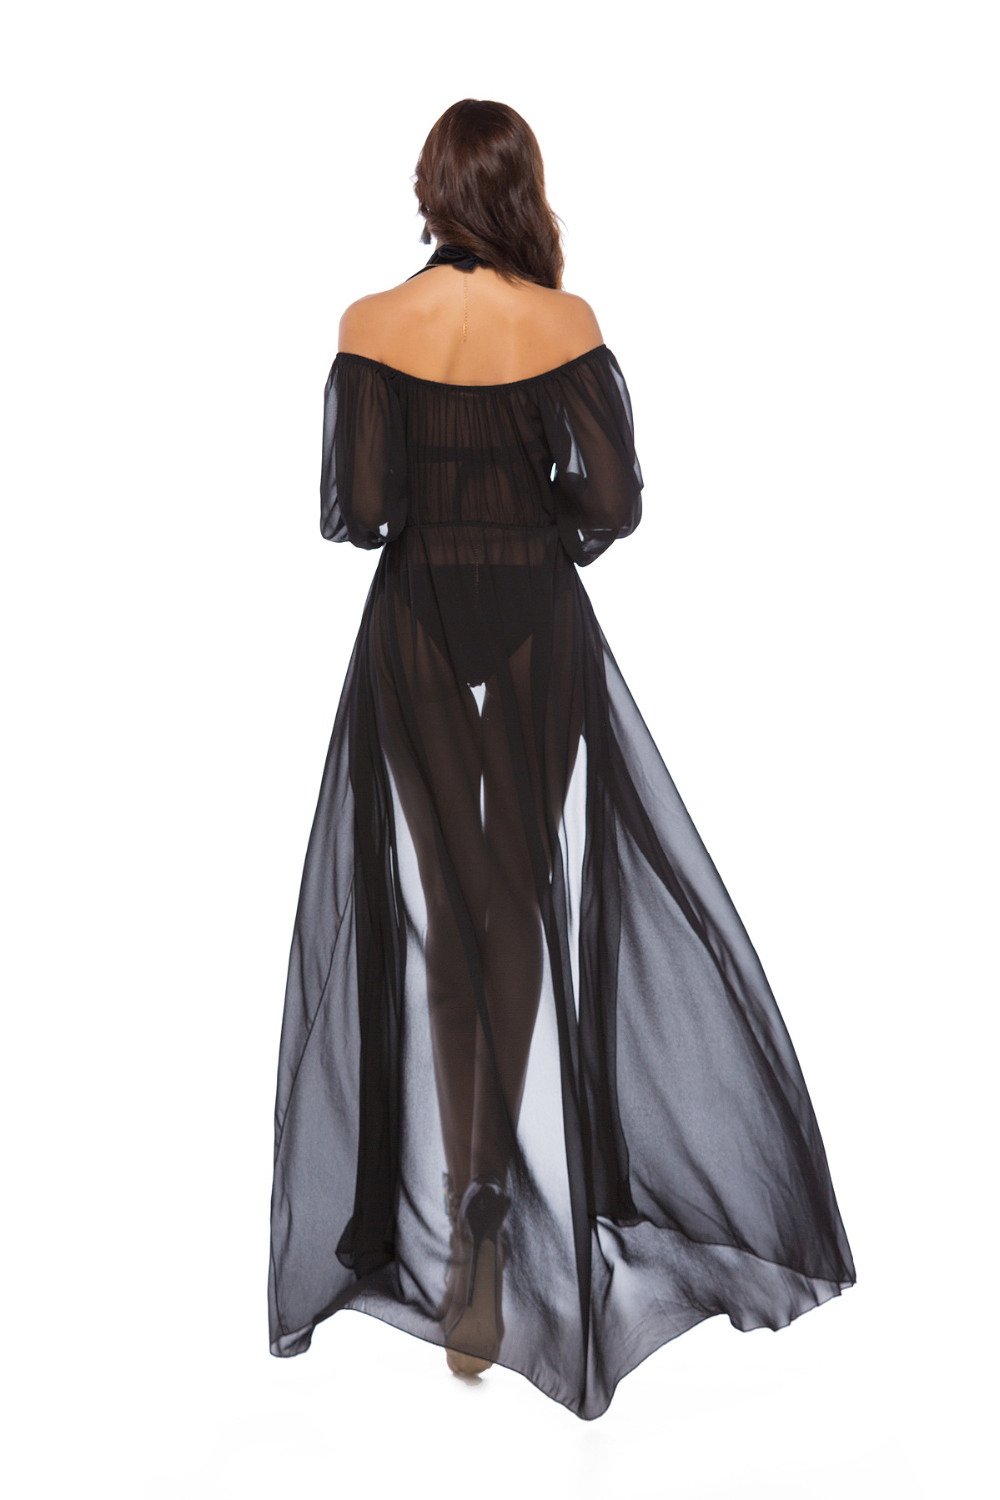 Sexy Beach Long Dress 2018 Women Summer Vintage Hippie High Fork Off Shoulder Beach Cover Up Dresses F097 in Cover Ups from Sports Entertainment